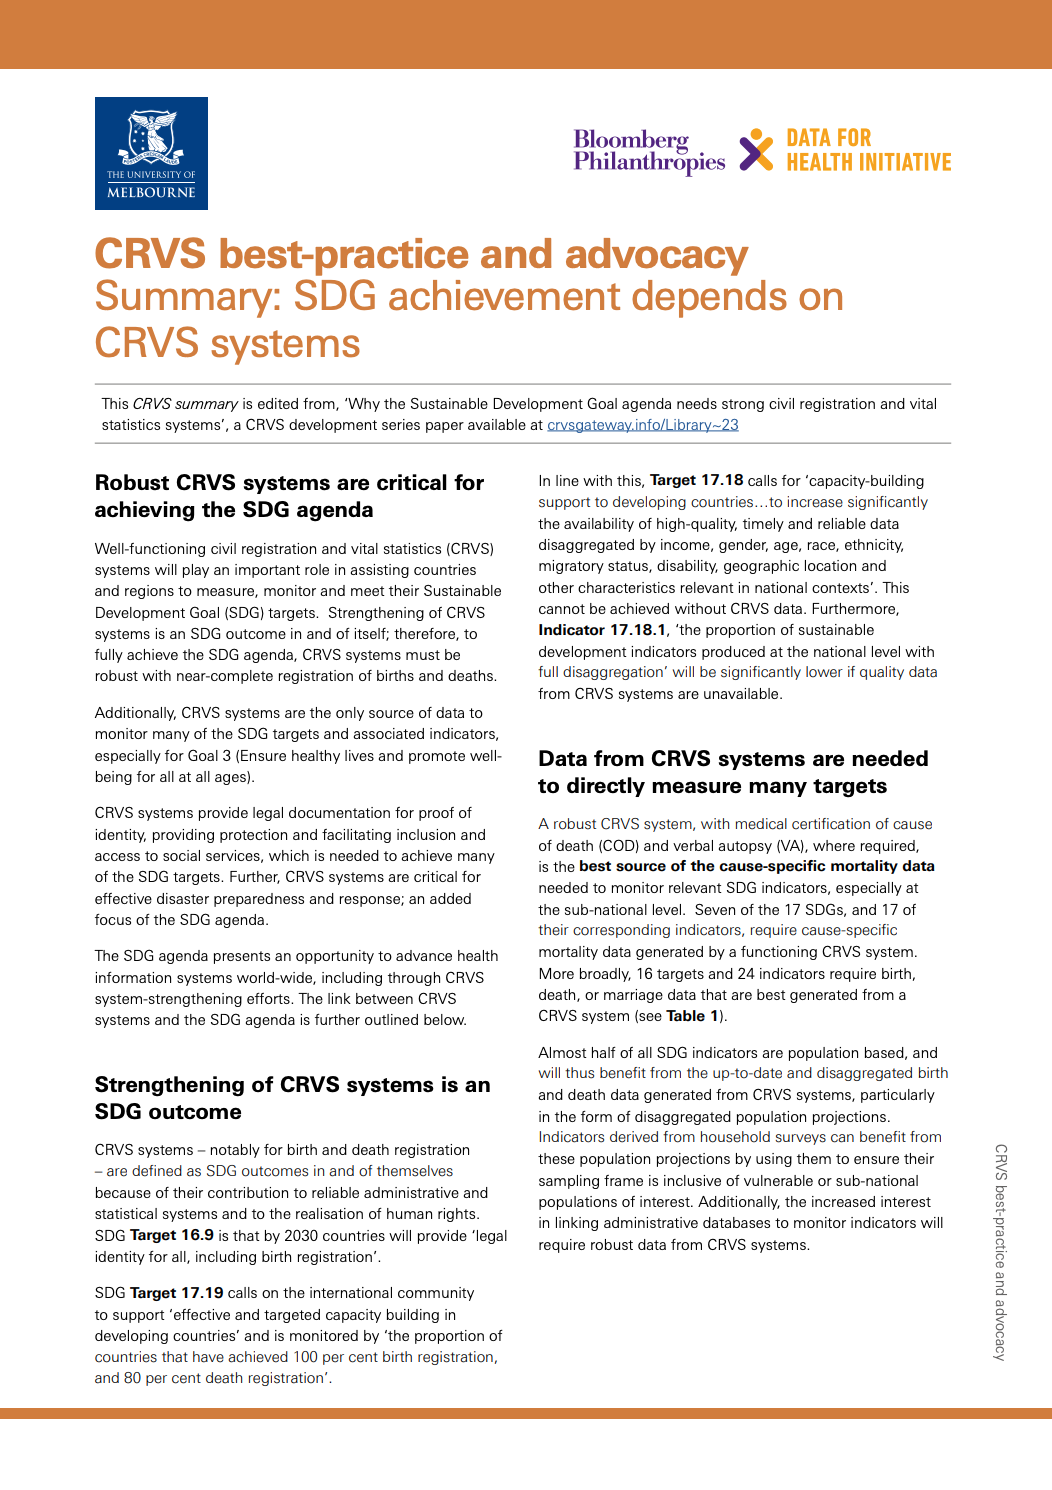 CRVS best-practice and advocacy Summary: SDG achievement depends on CRVS systems thumbnail